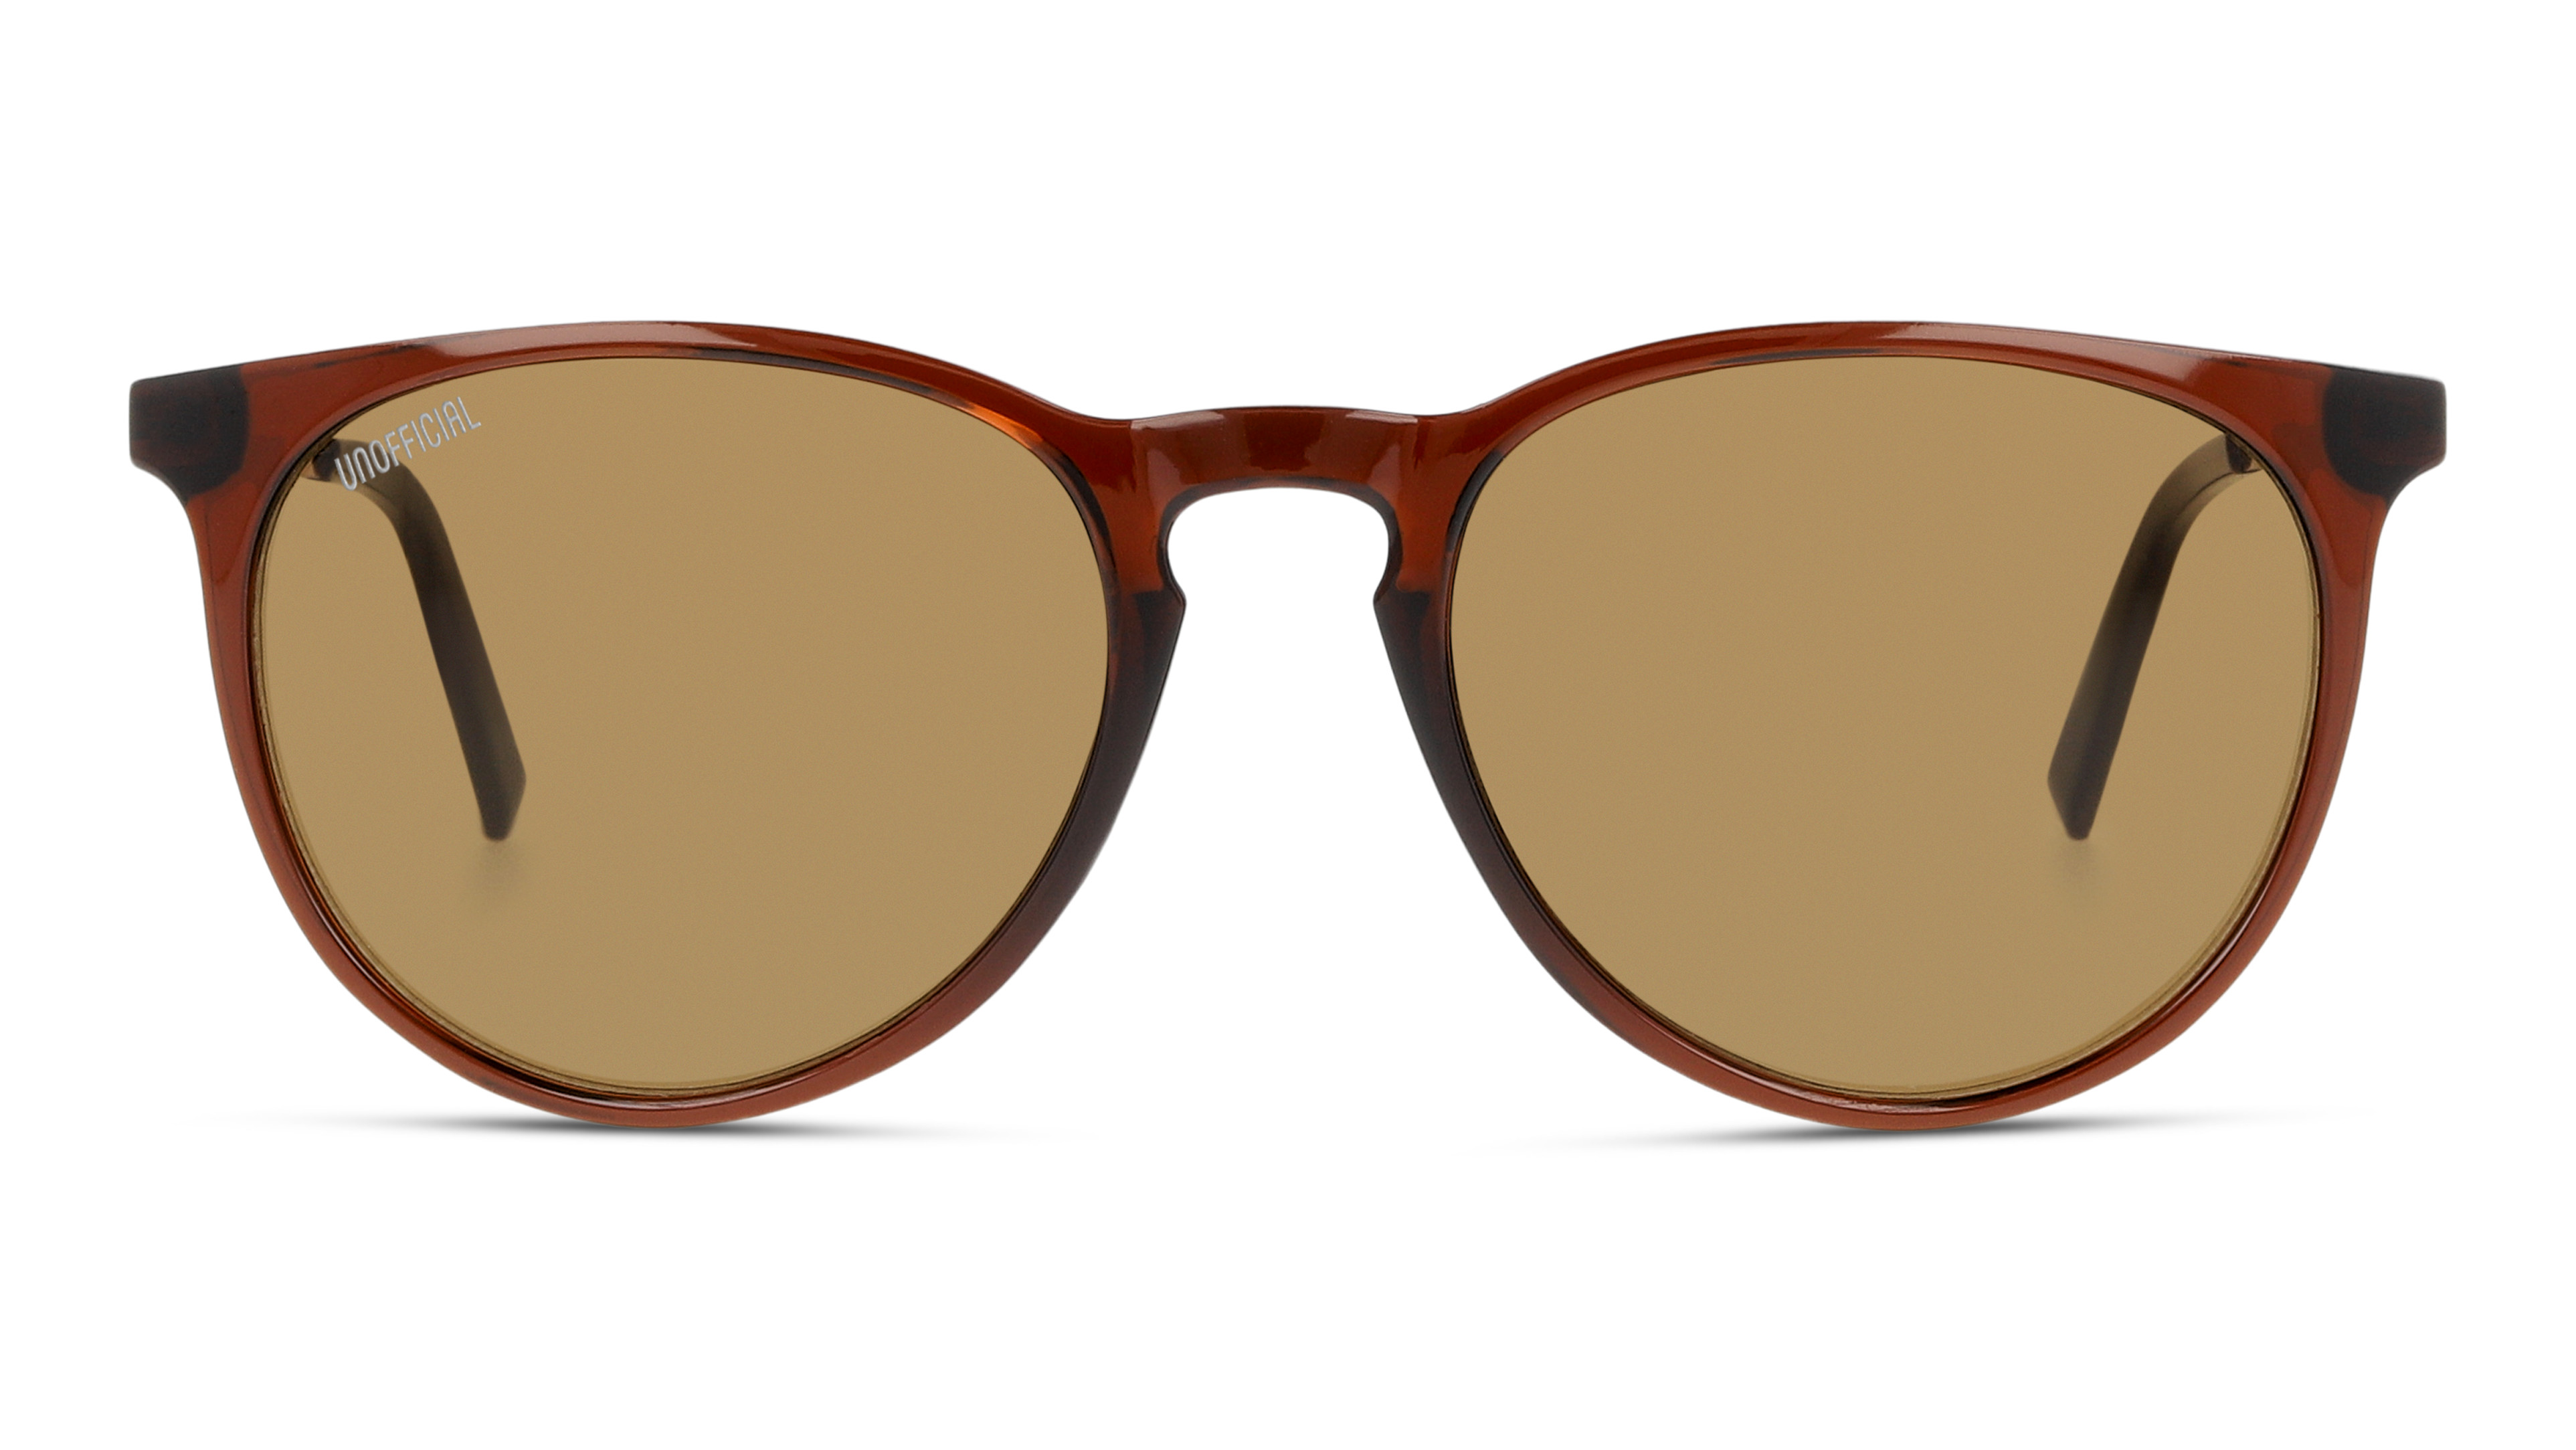 8719154732911-front-01-unofficial-unsf0089-eyewear-brown-gold